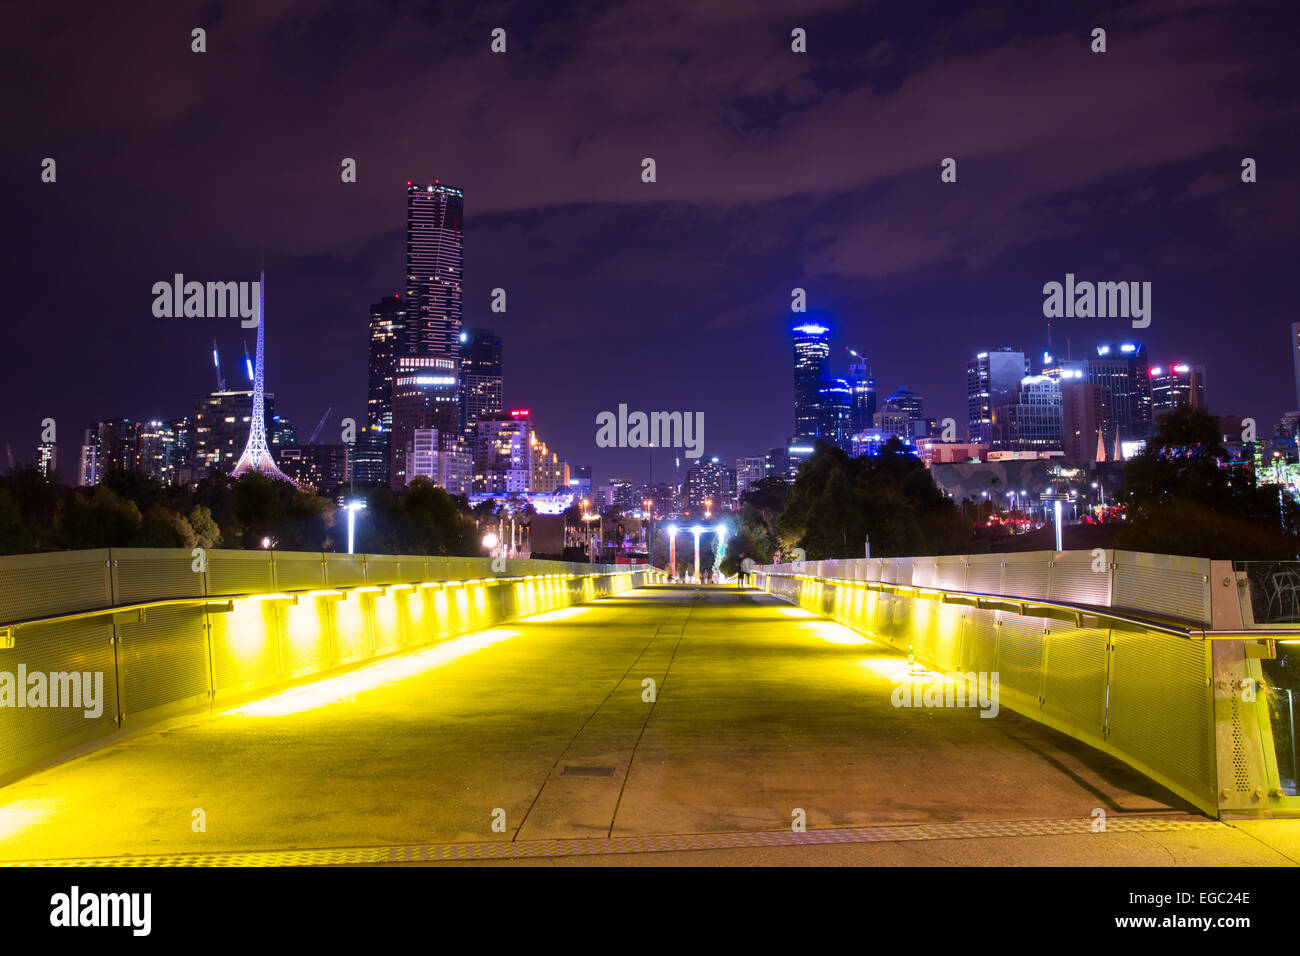 Melbourne, Australia - February 21 - The Melbourne skyline from Birrarung Marr during White Night on February 21st - Stock Image